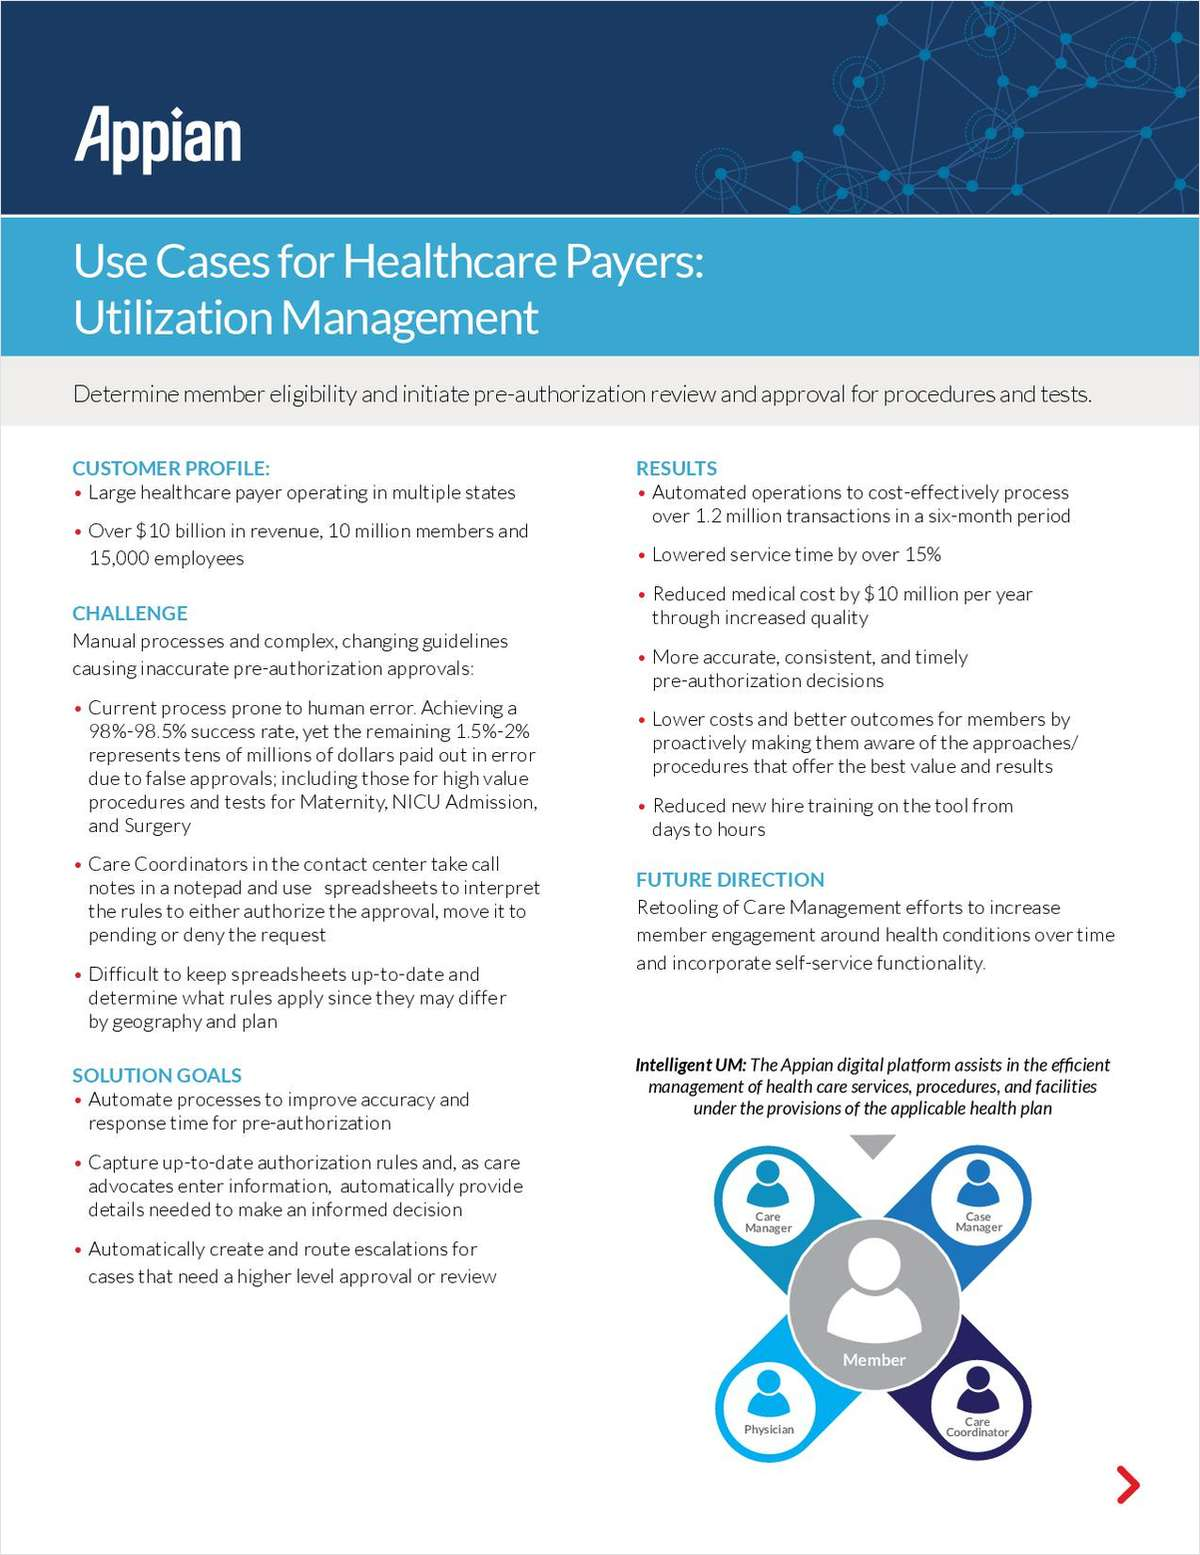 Use Cases for Healthcare Payers: Utilization Management